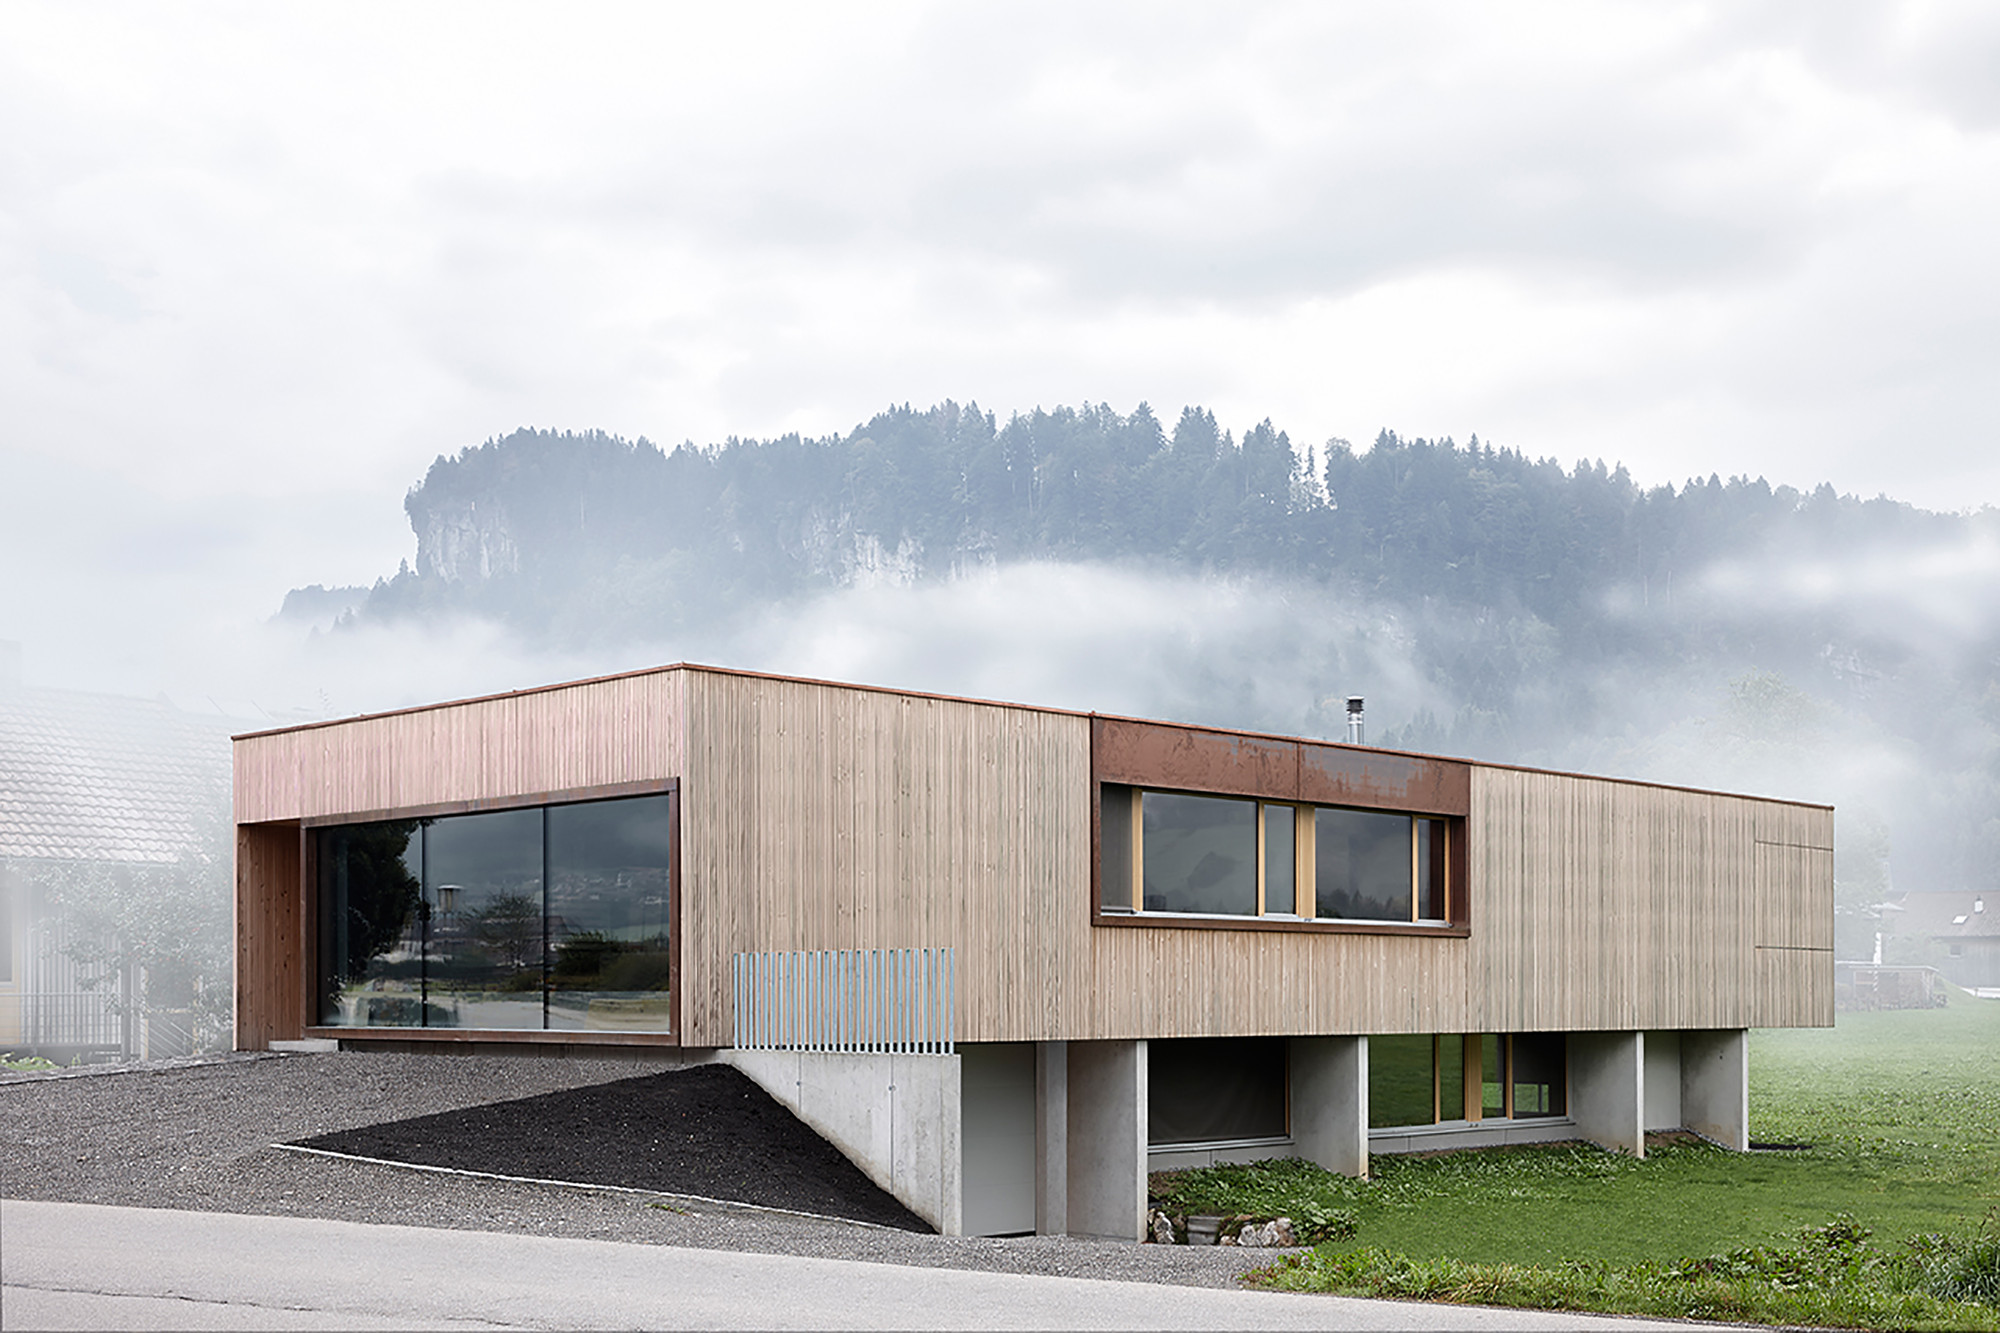 House with Showroom / ao-architekten + Markus Innauer, © Adolf Bereuter